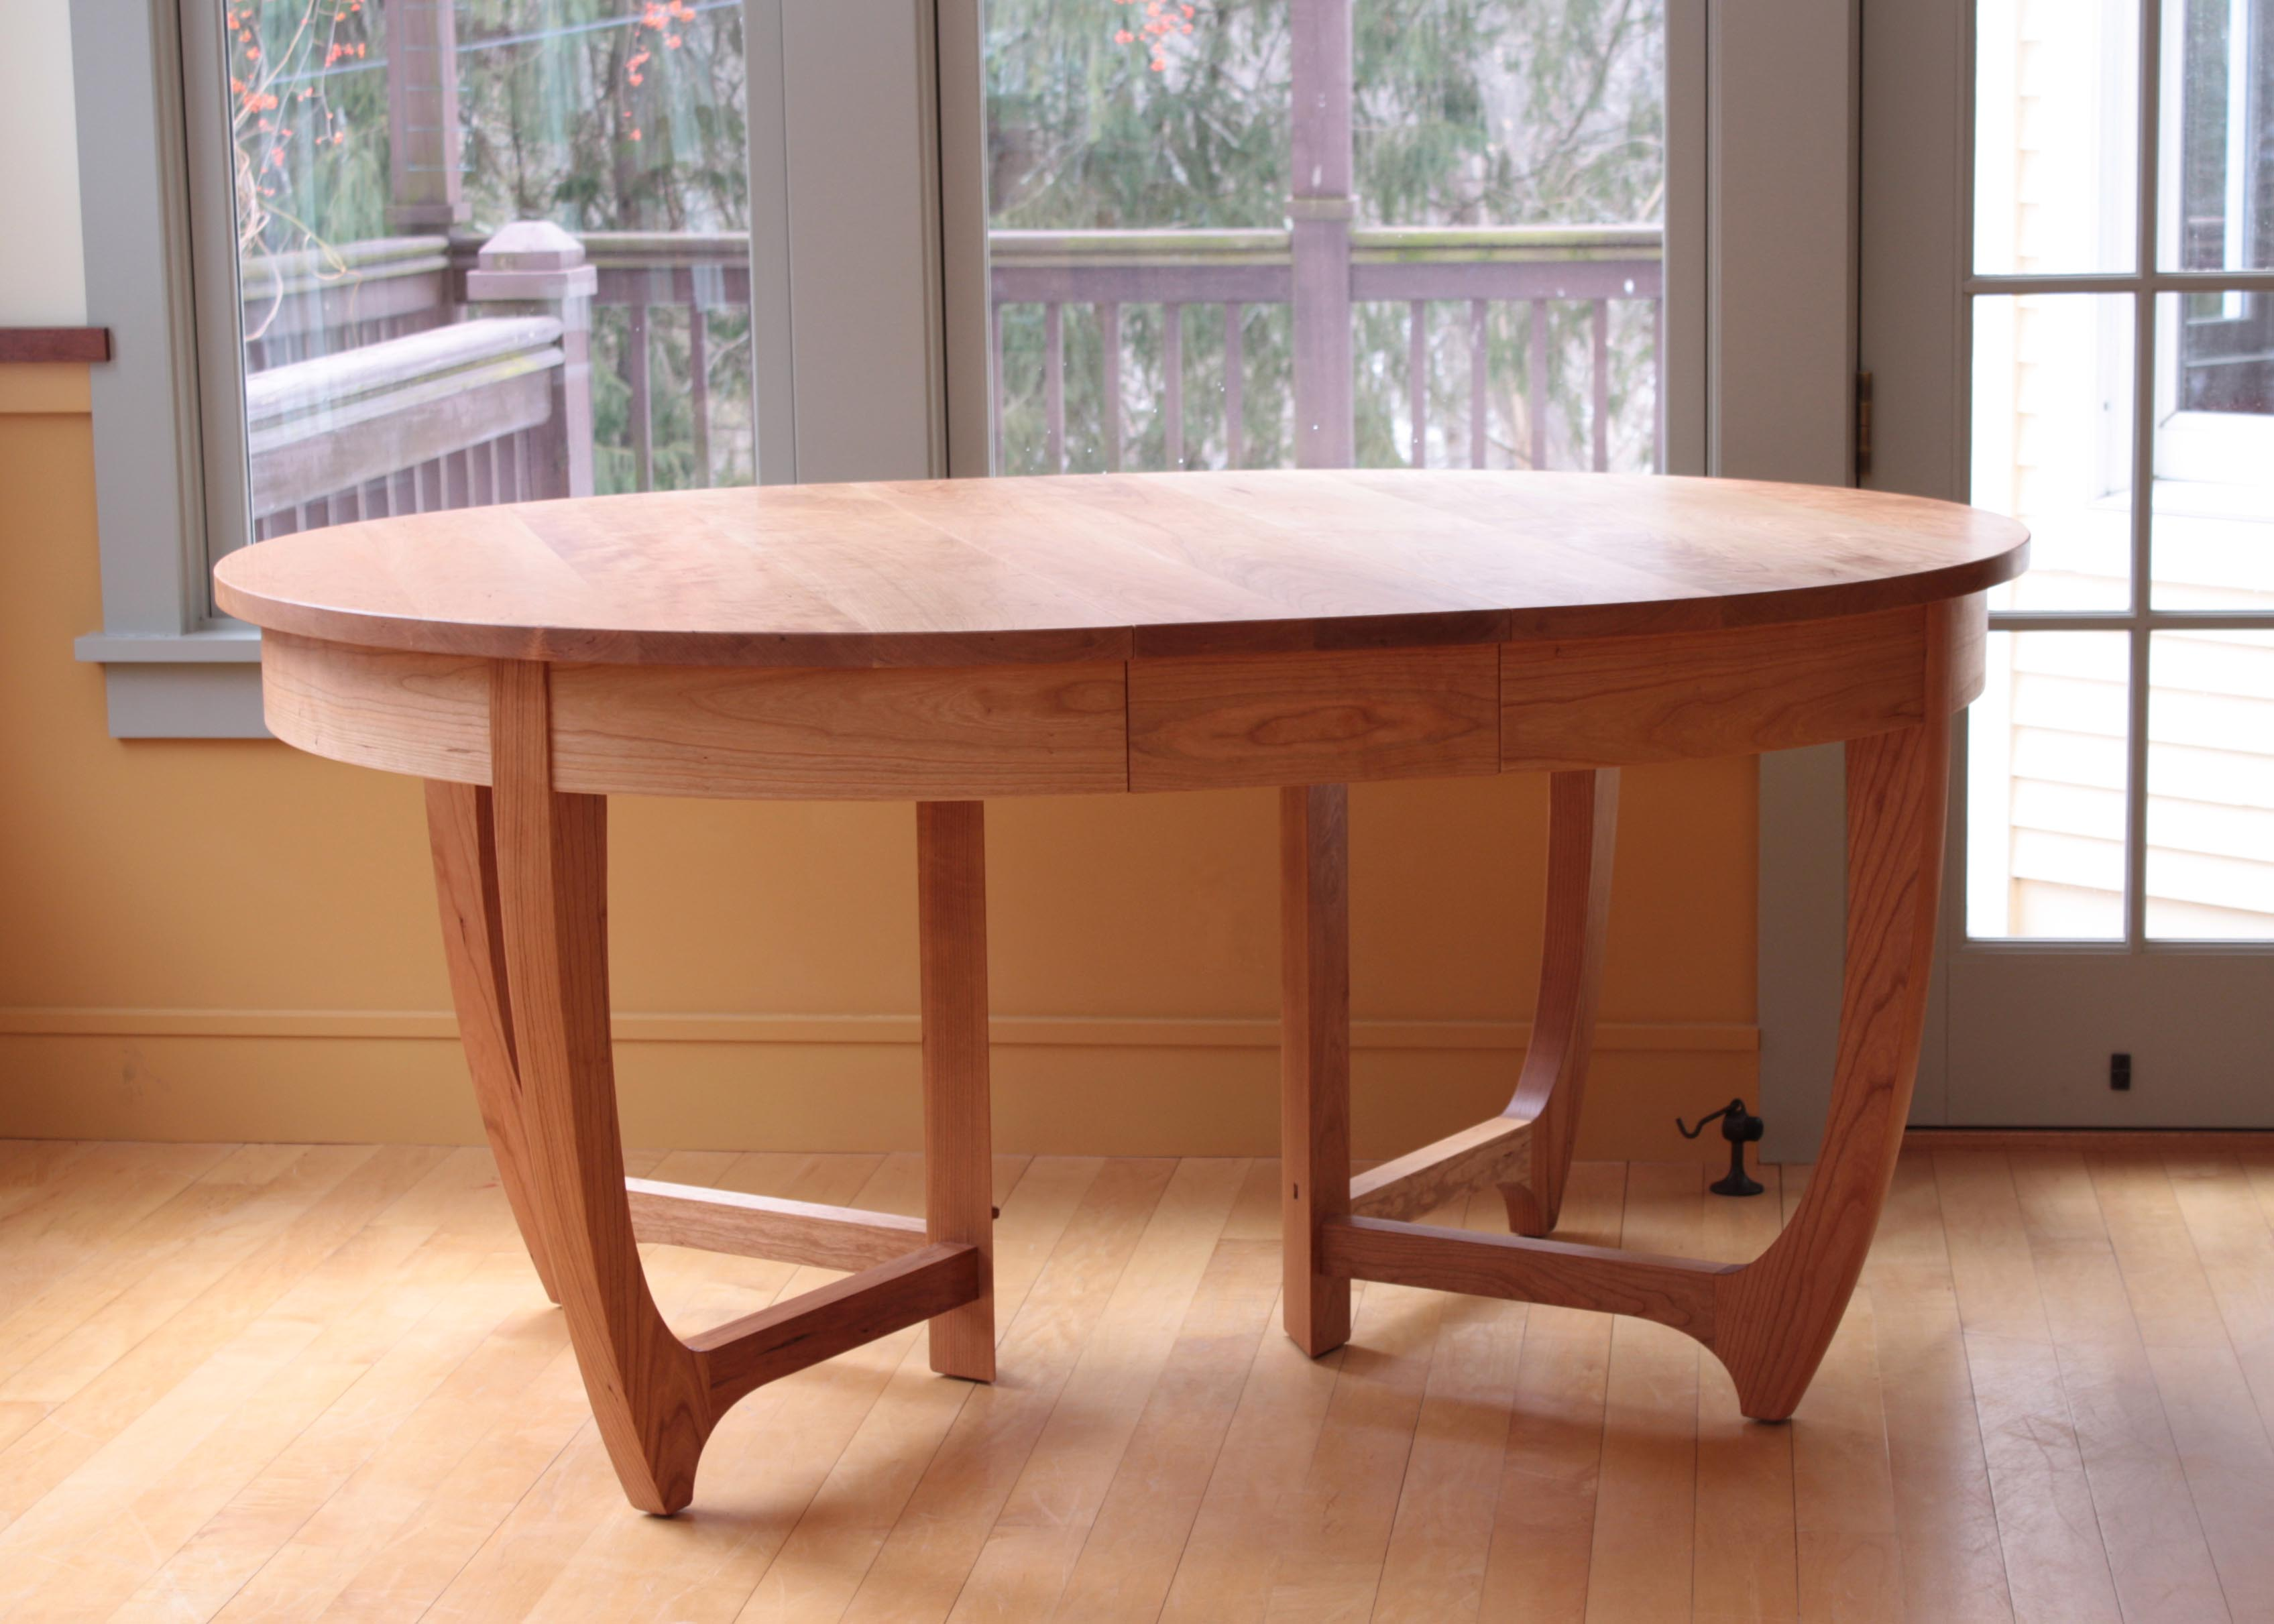 Large Tables Brian Clark Woodworks : jarvis dining table with leaf copy from brianclarkwoodworks.com size 3391 x 2422 jpeg 364kB